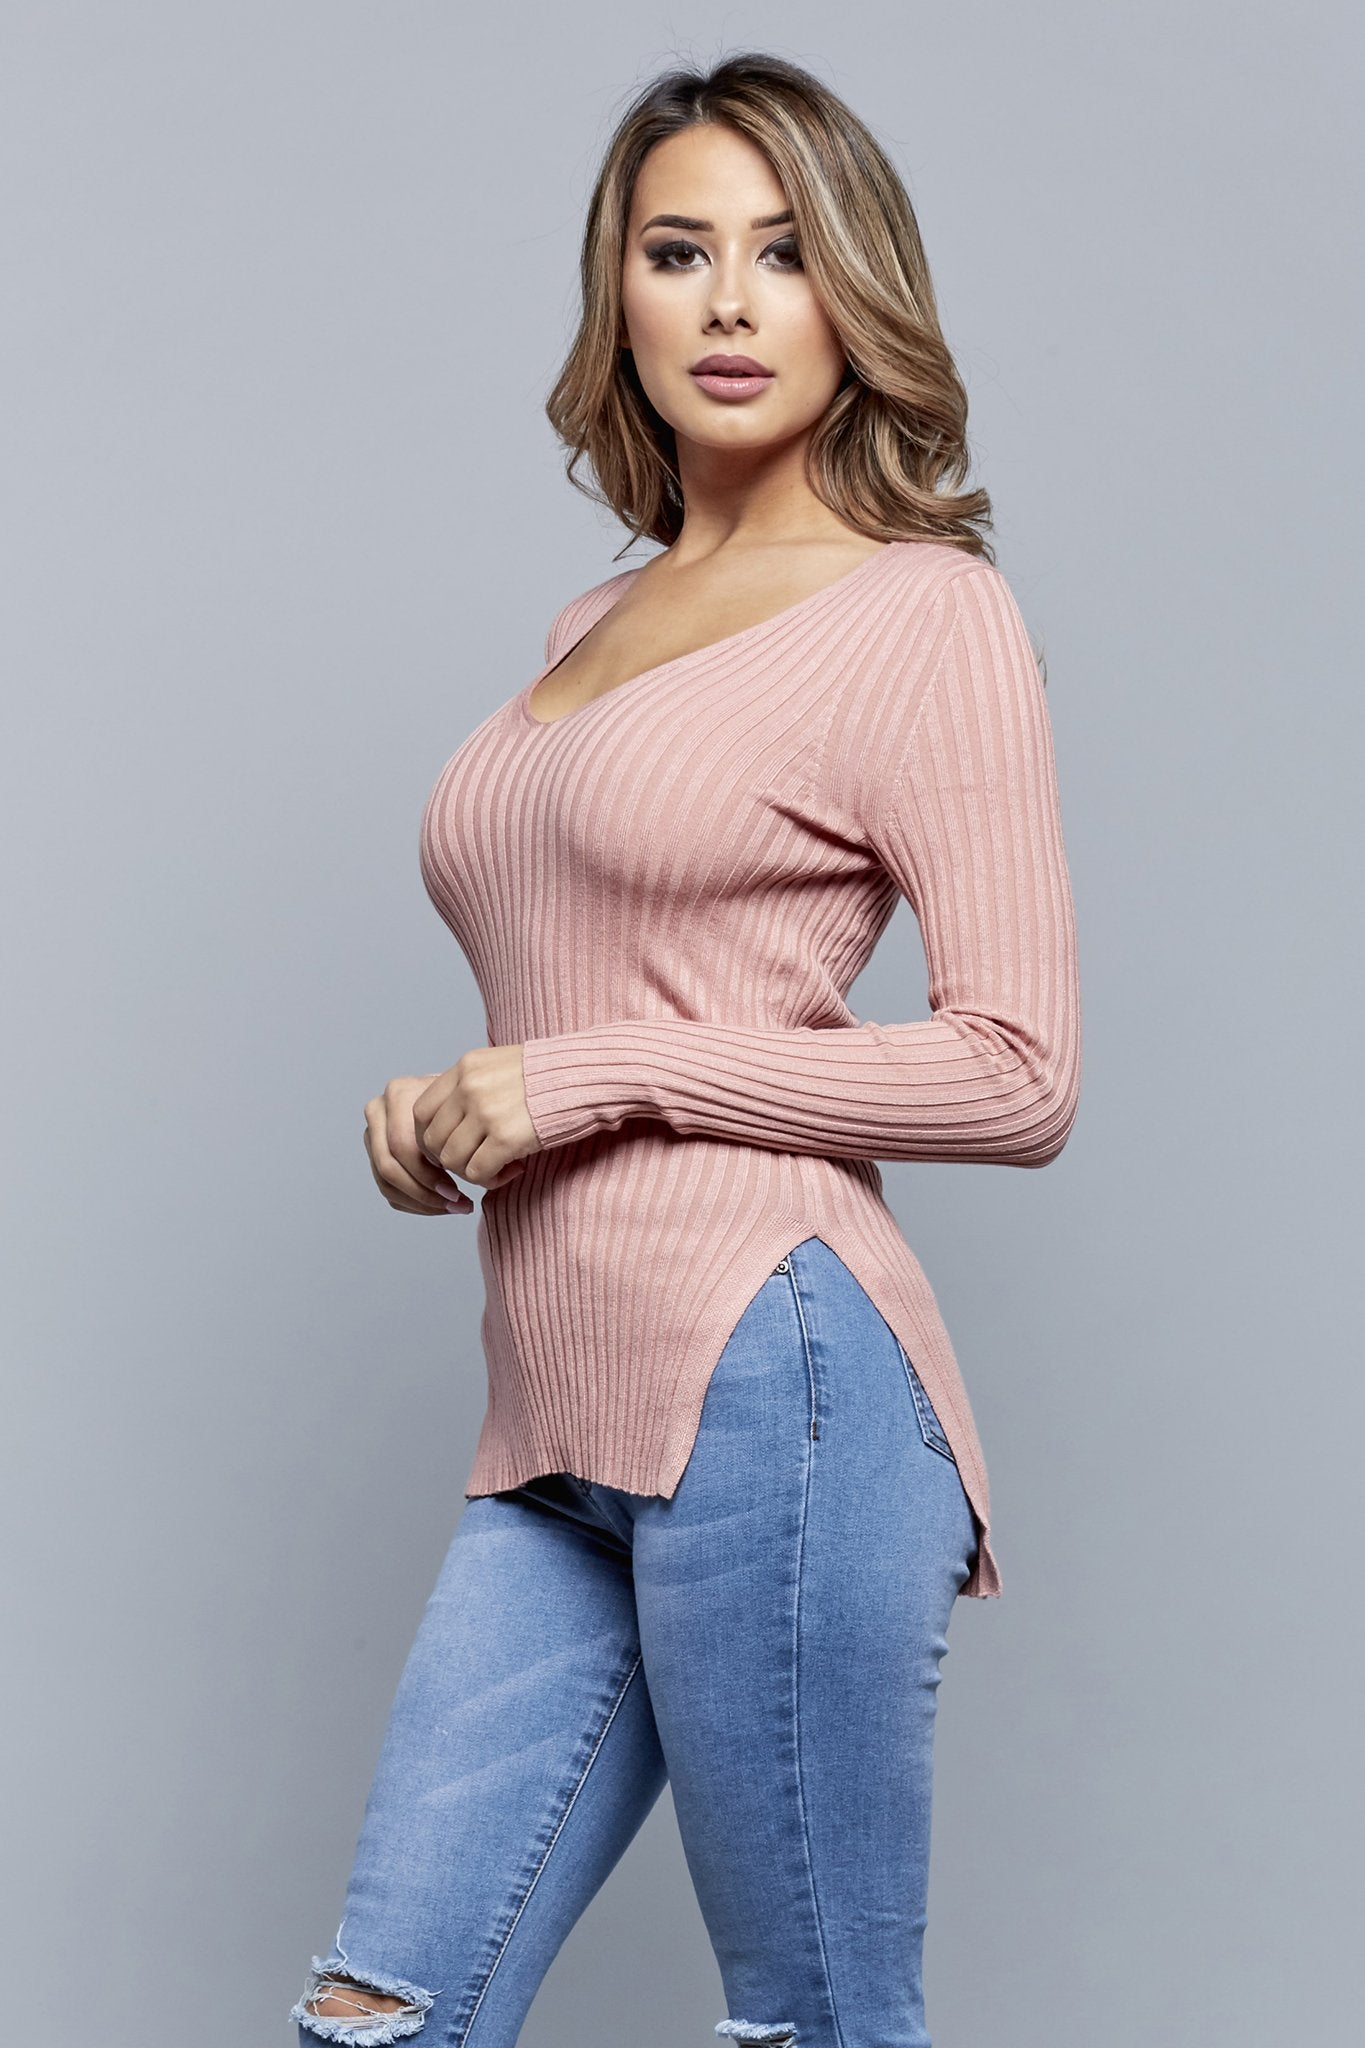 SWEATER WEATHER TOP | PINK